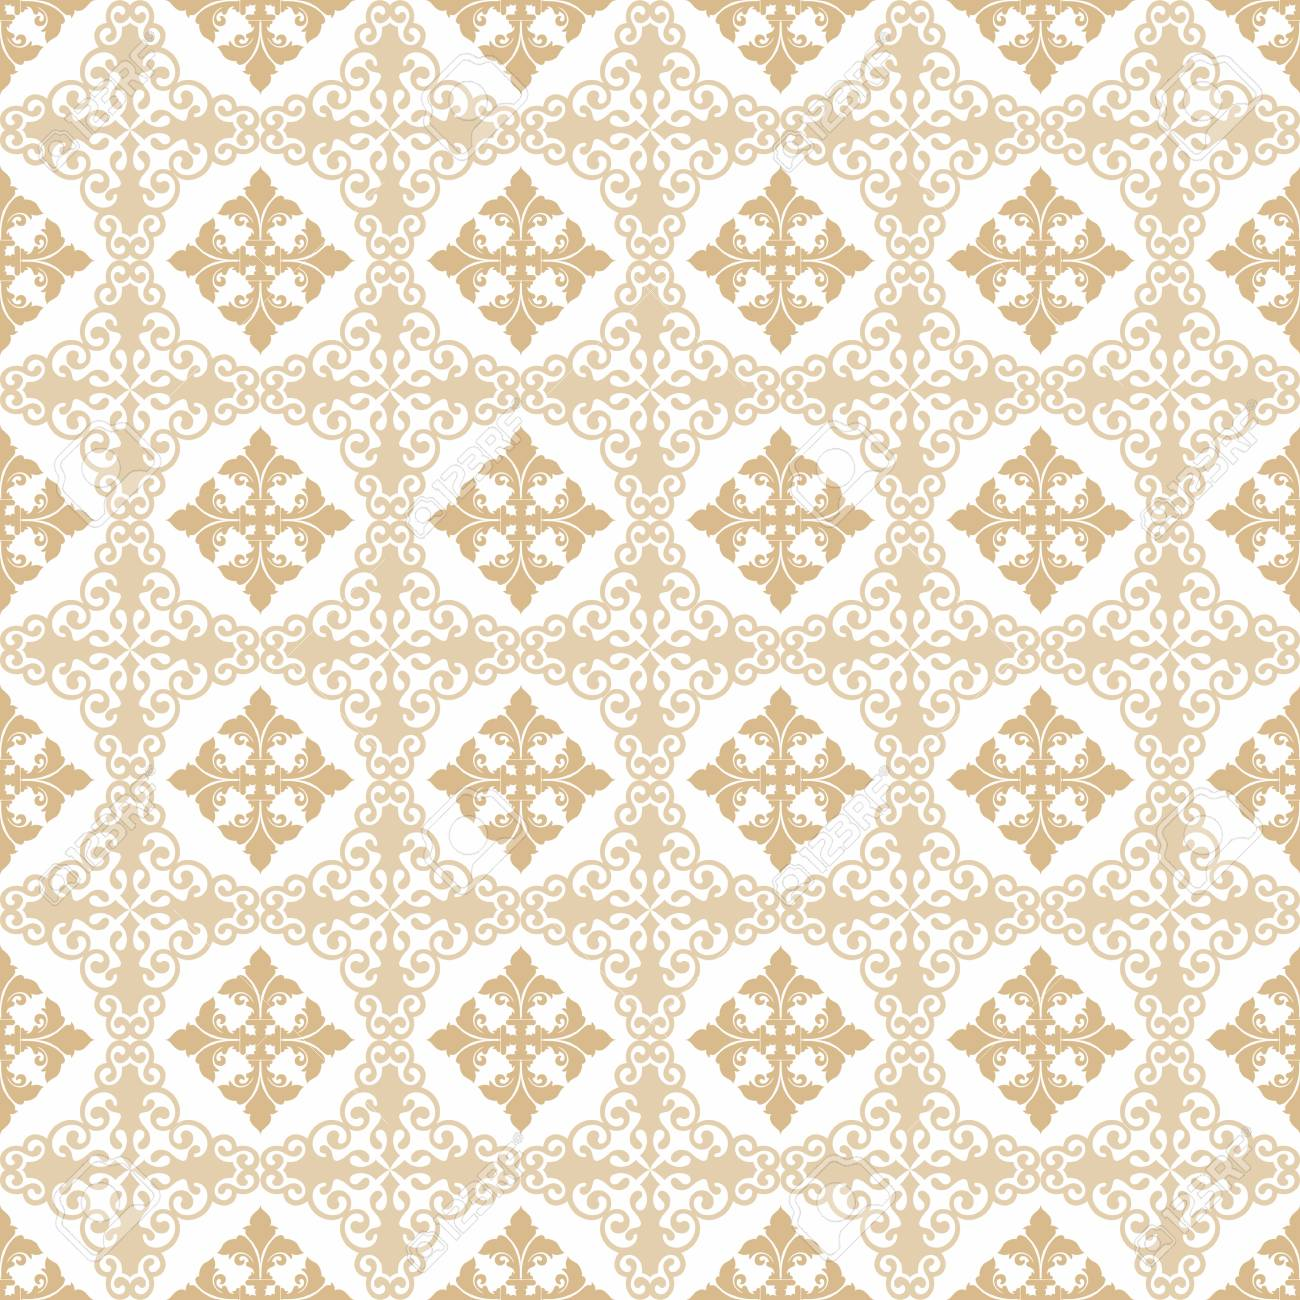 Seamless pattern of hearts and floral Stock Vector - 11991387